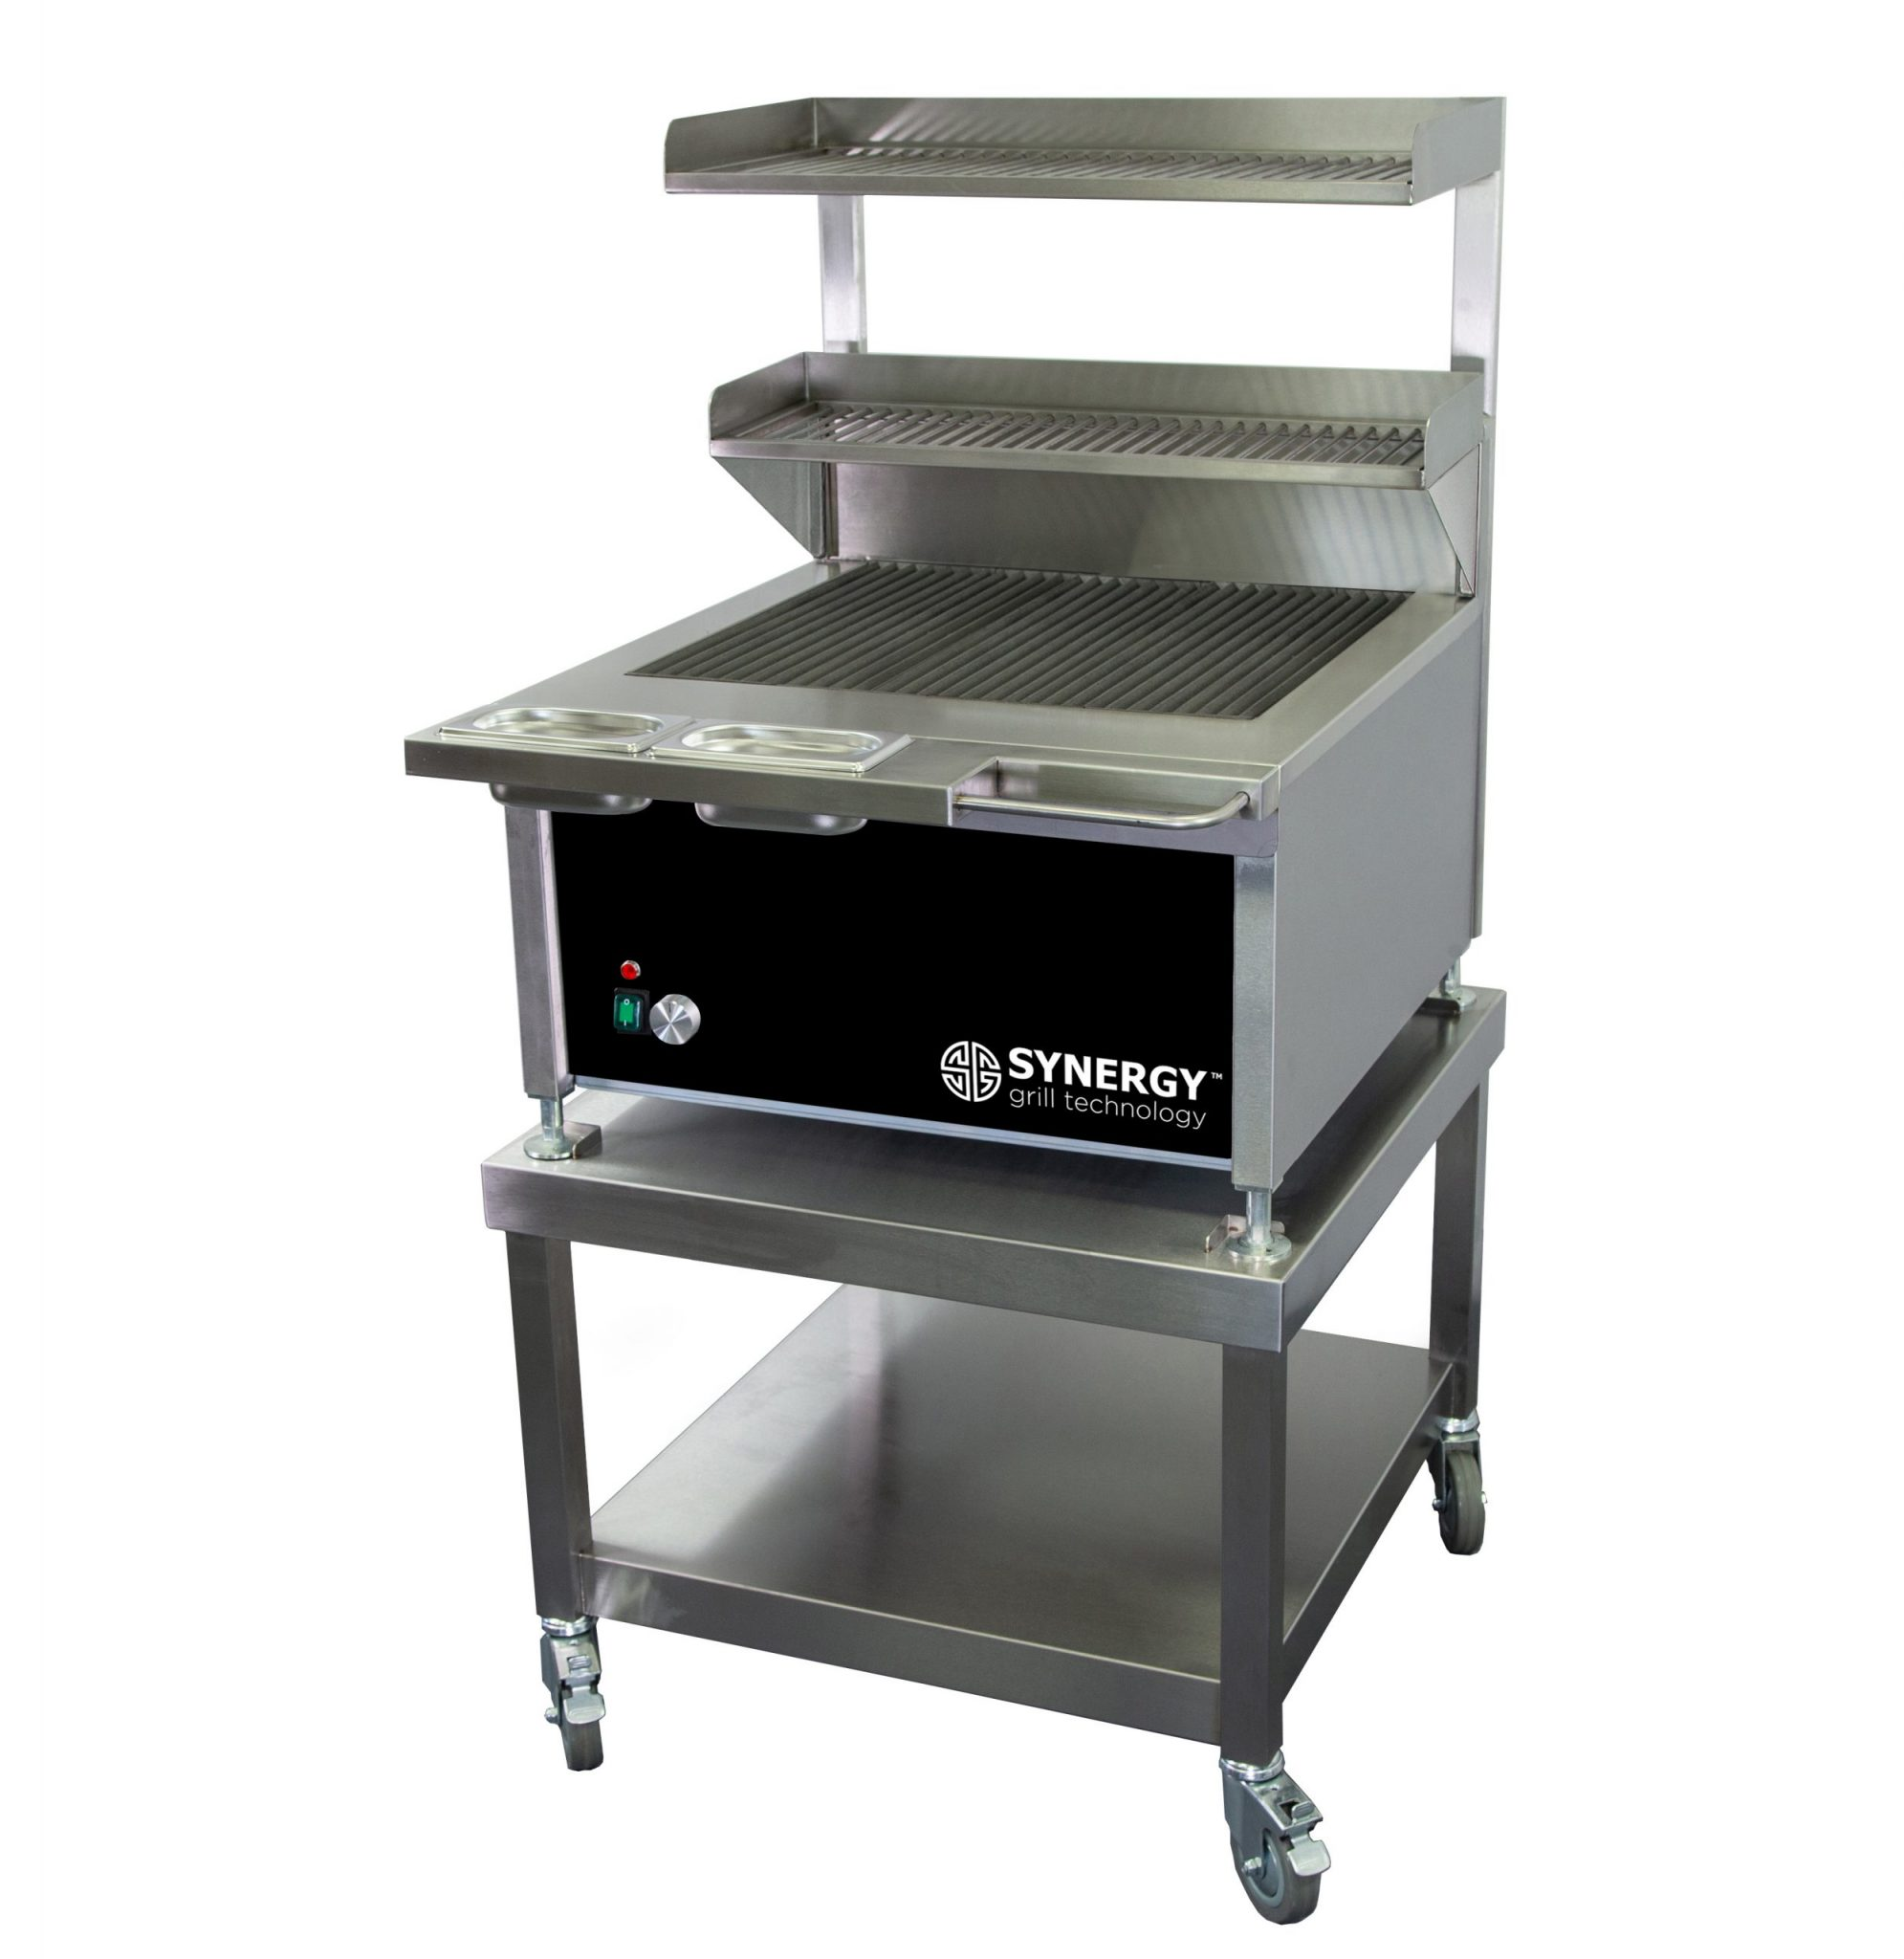 Synergy Grill Trilogy ST630 Black with Mobile Table